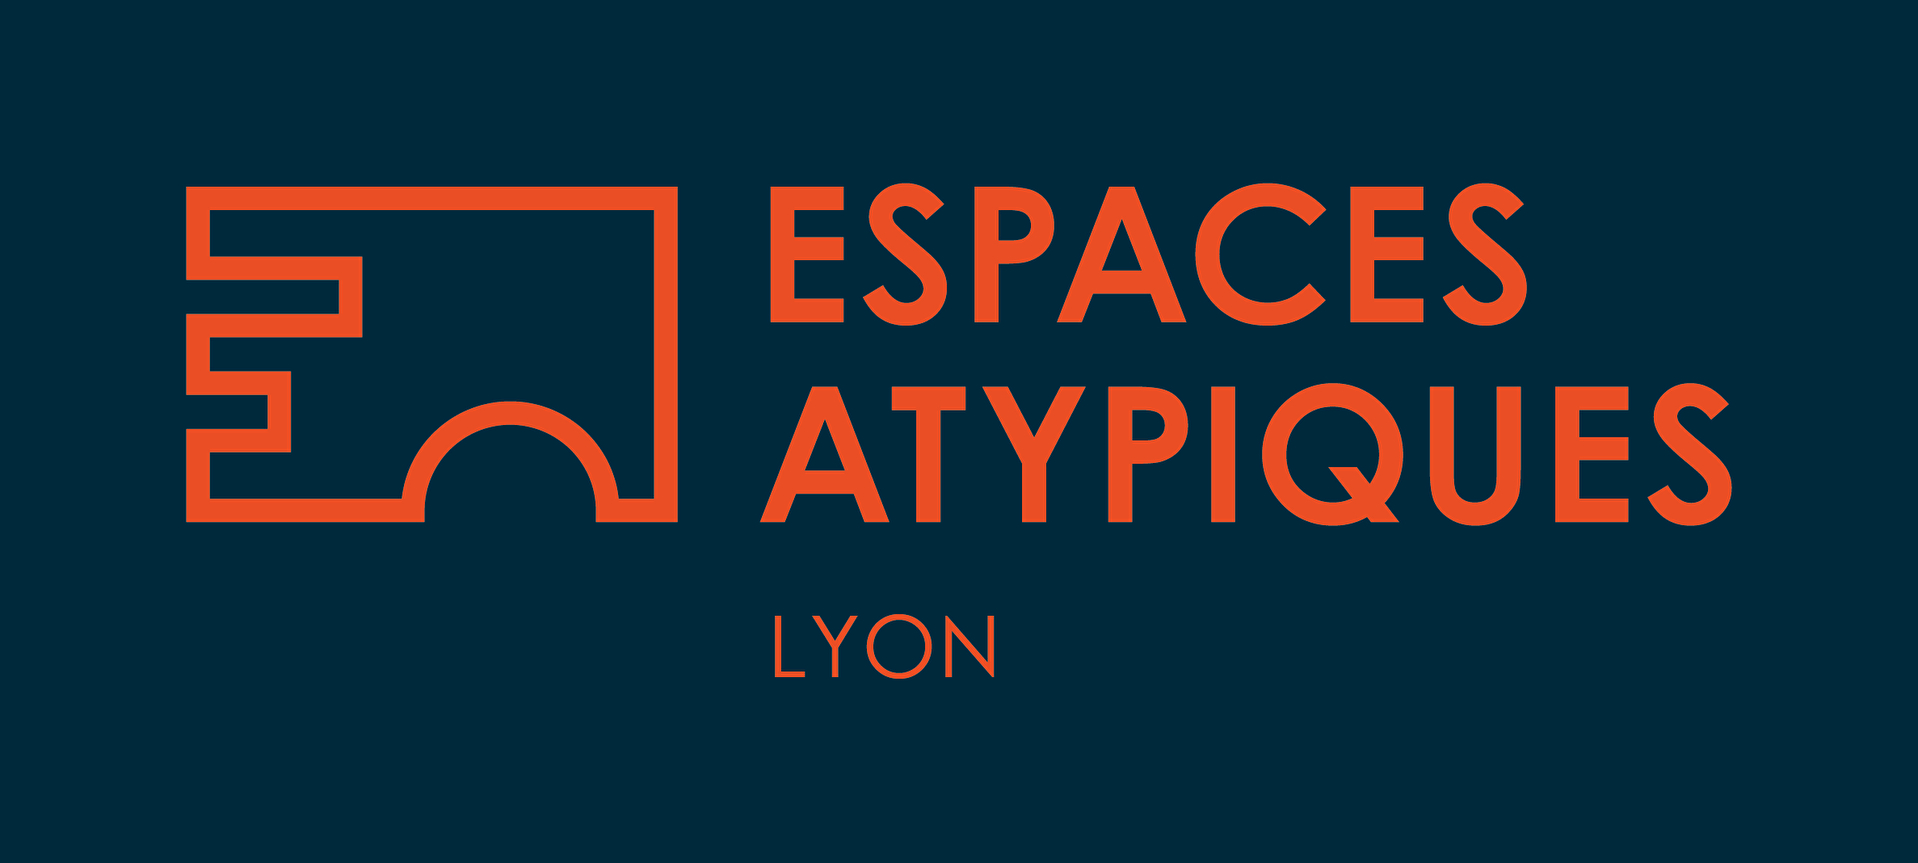 ESPACES ATYPIQUES LYON - PagesIMMO